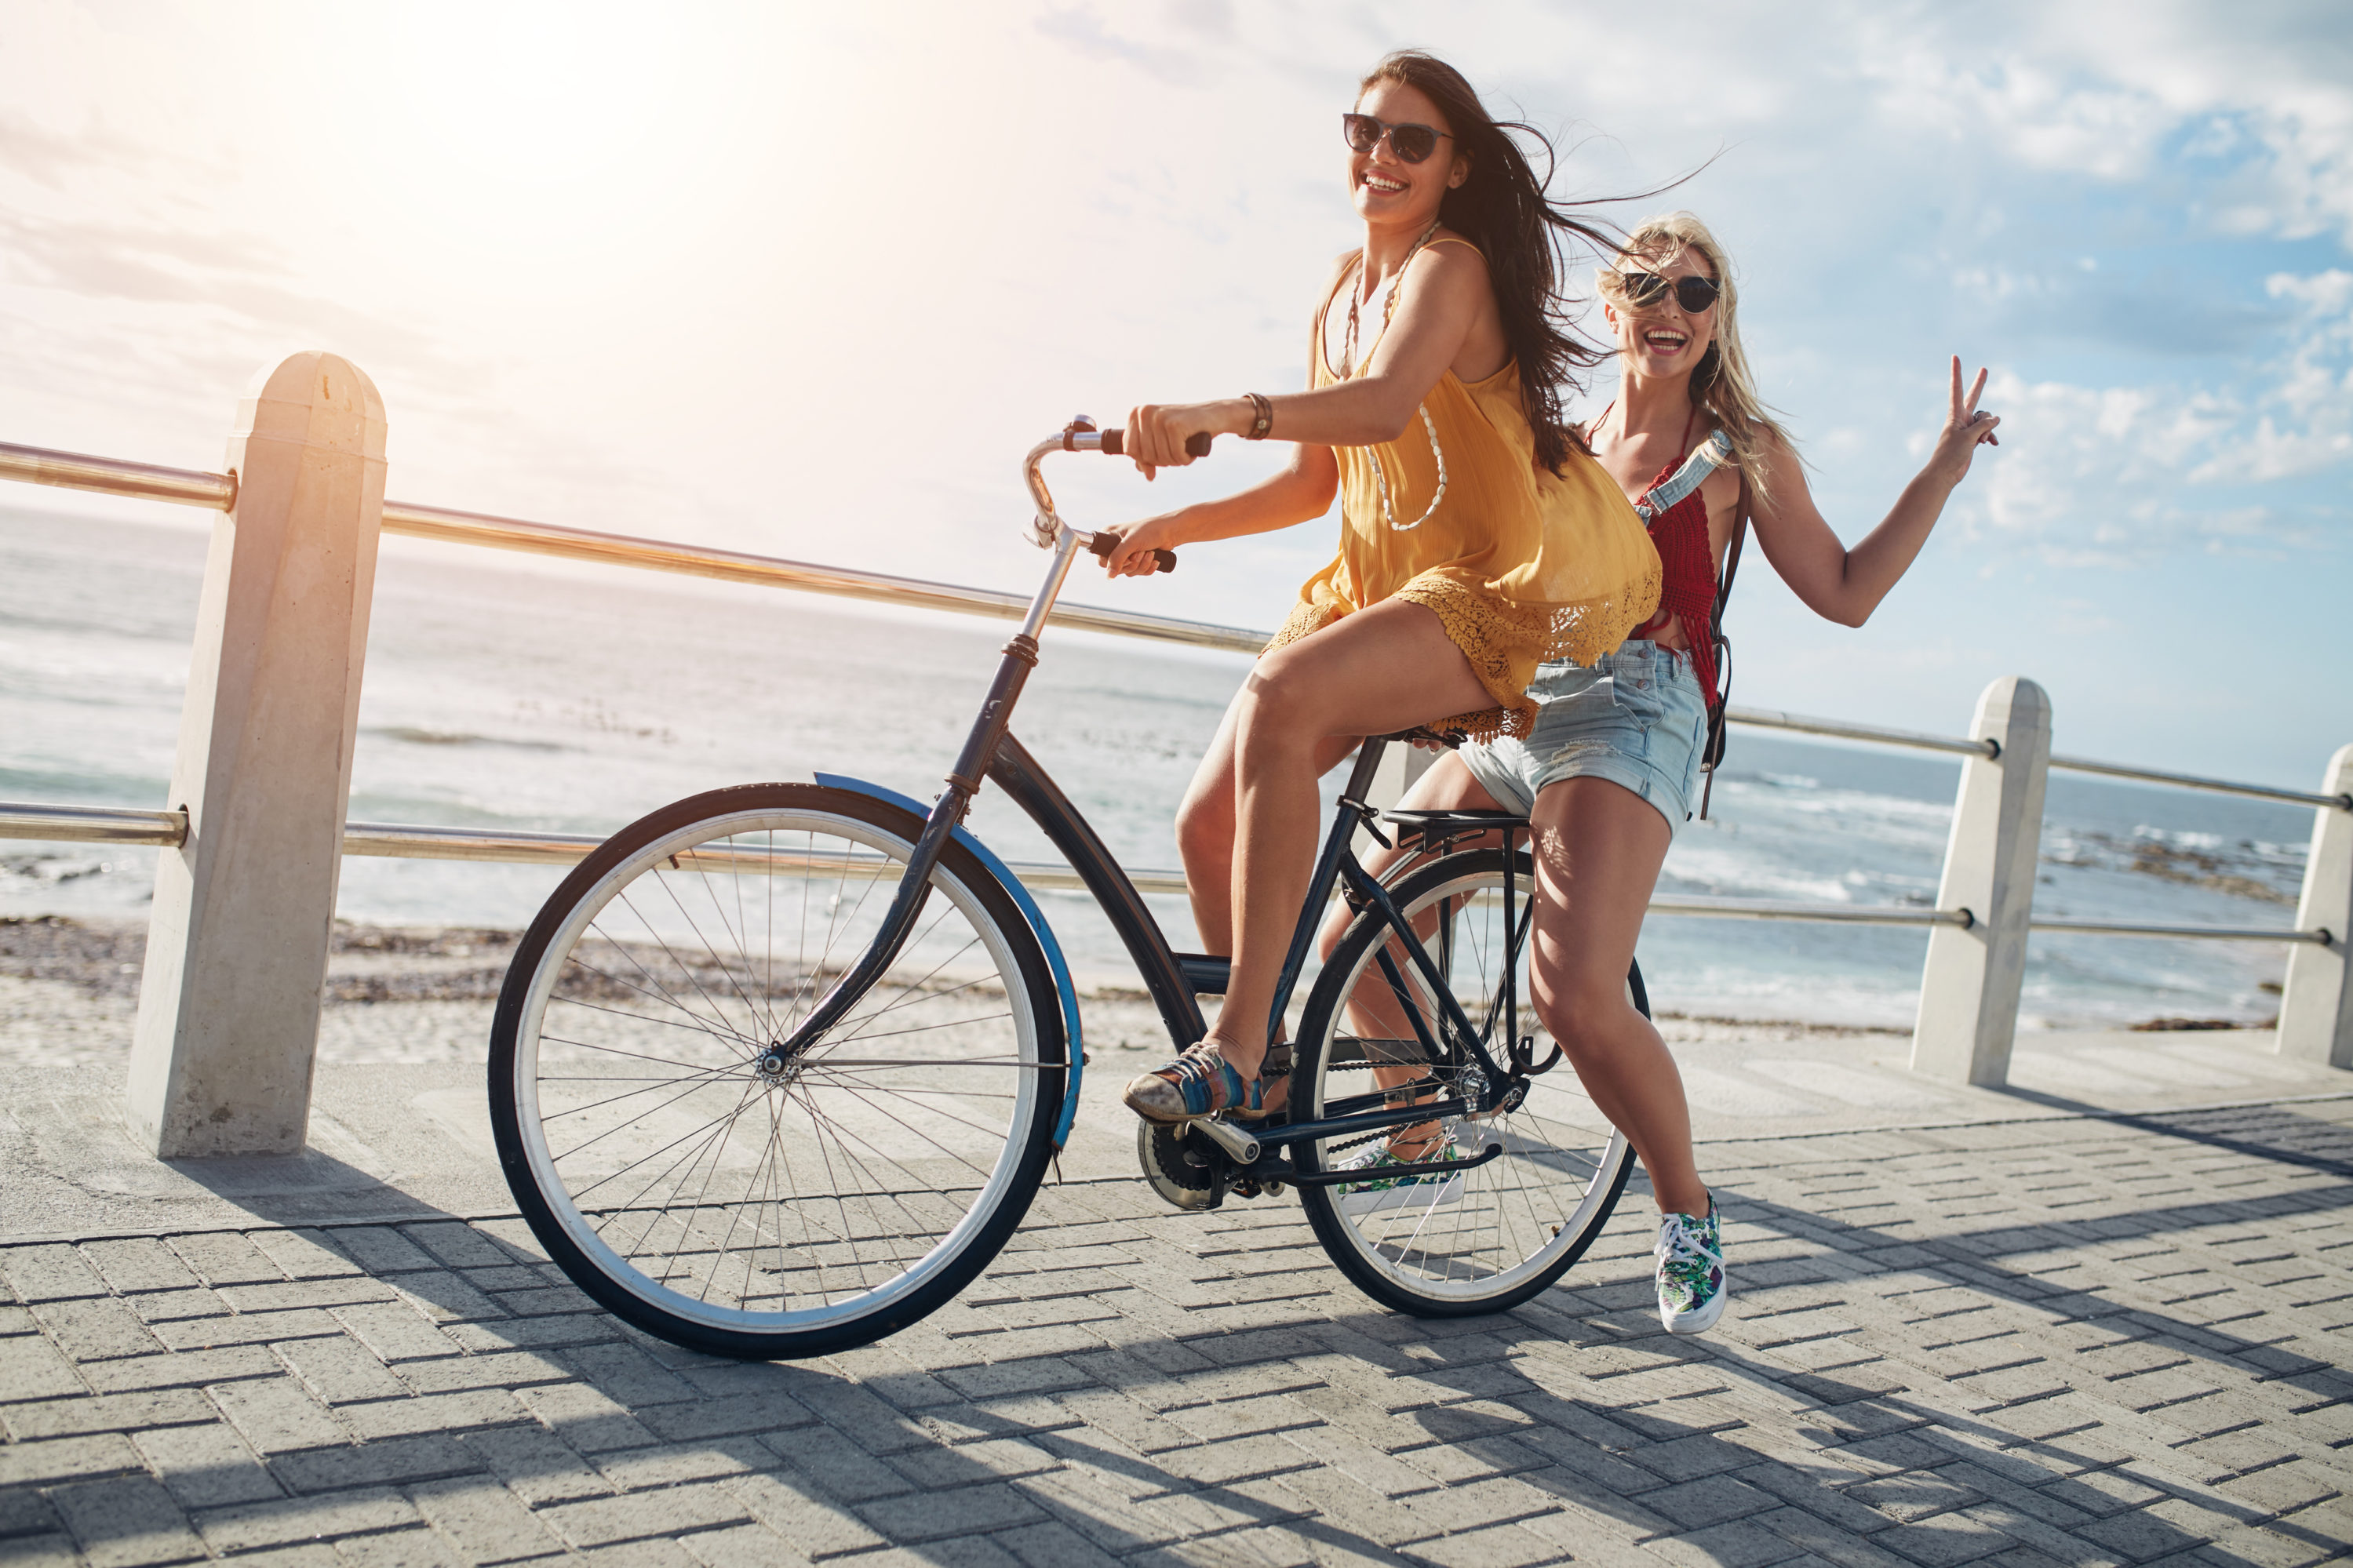 Weekend saving ideas – for your pocket and lifestyle